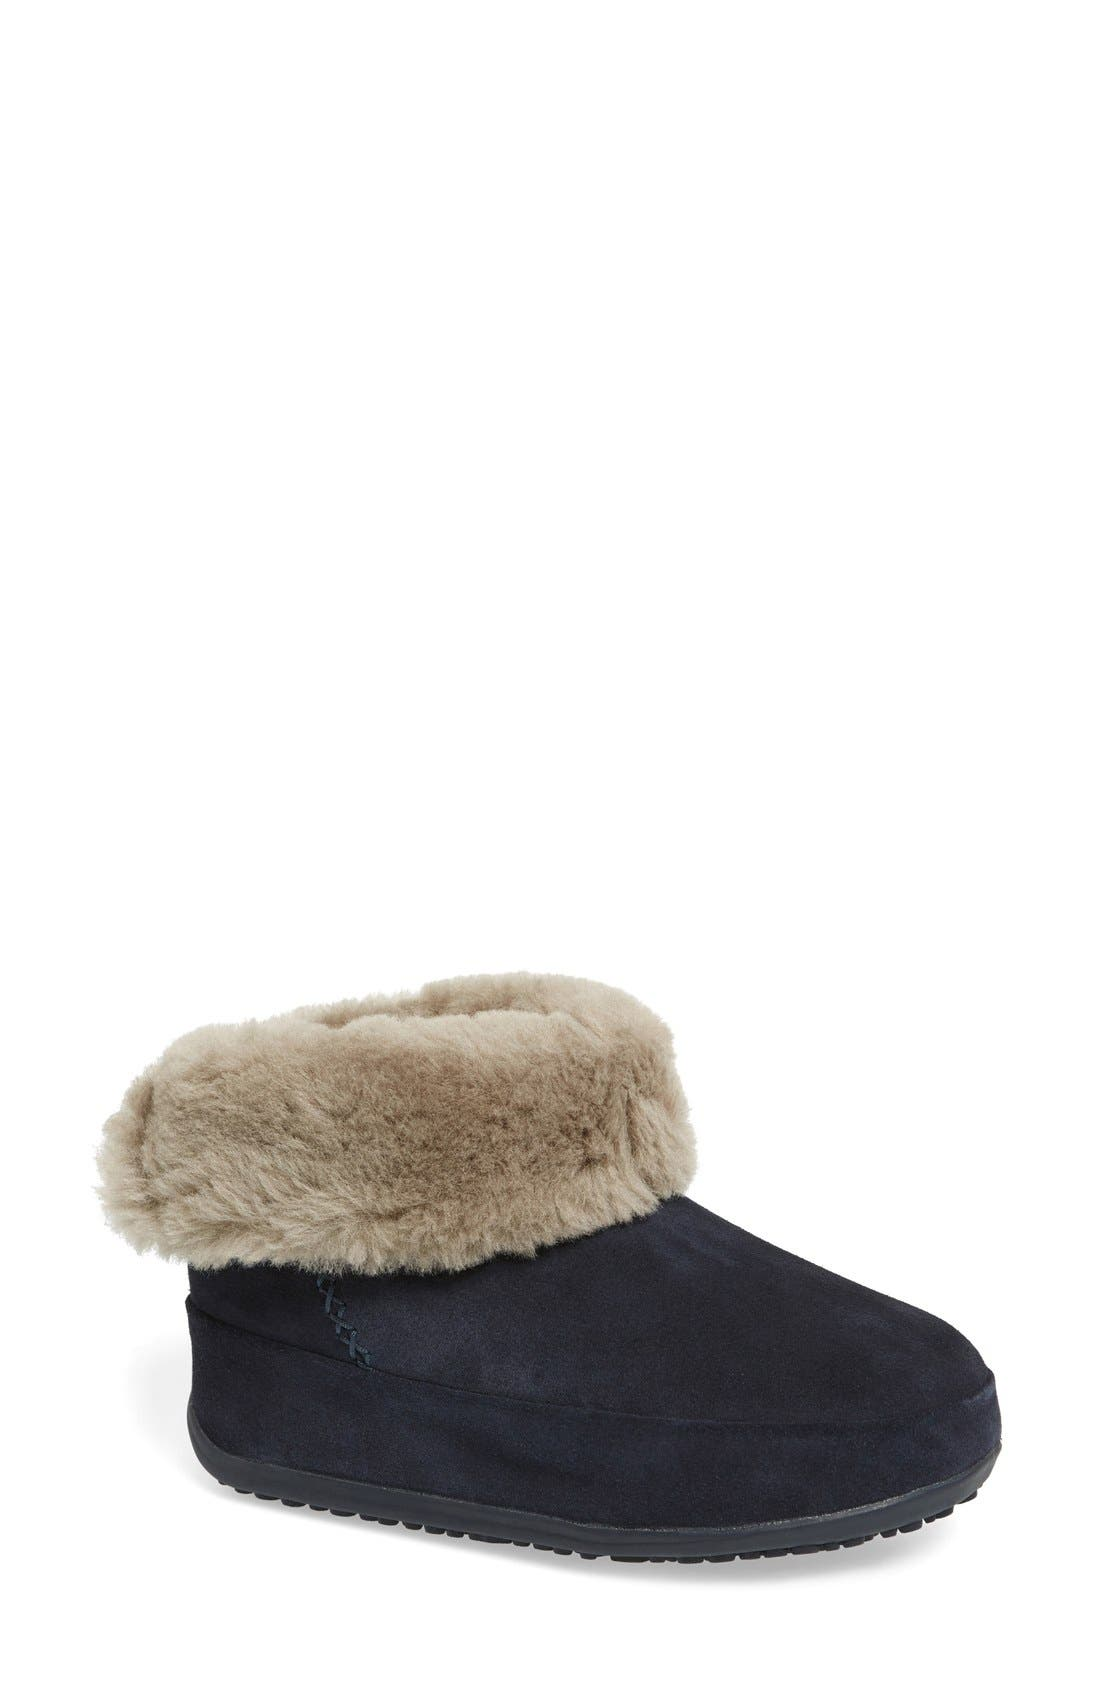 Alternate Image 1 Selected - FitFlop™'Shorty' Shearling Lined Boot (Women)